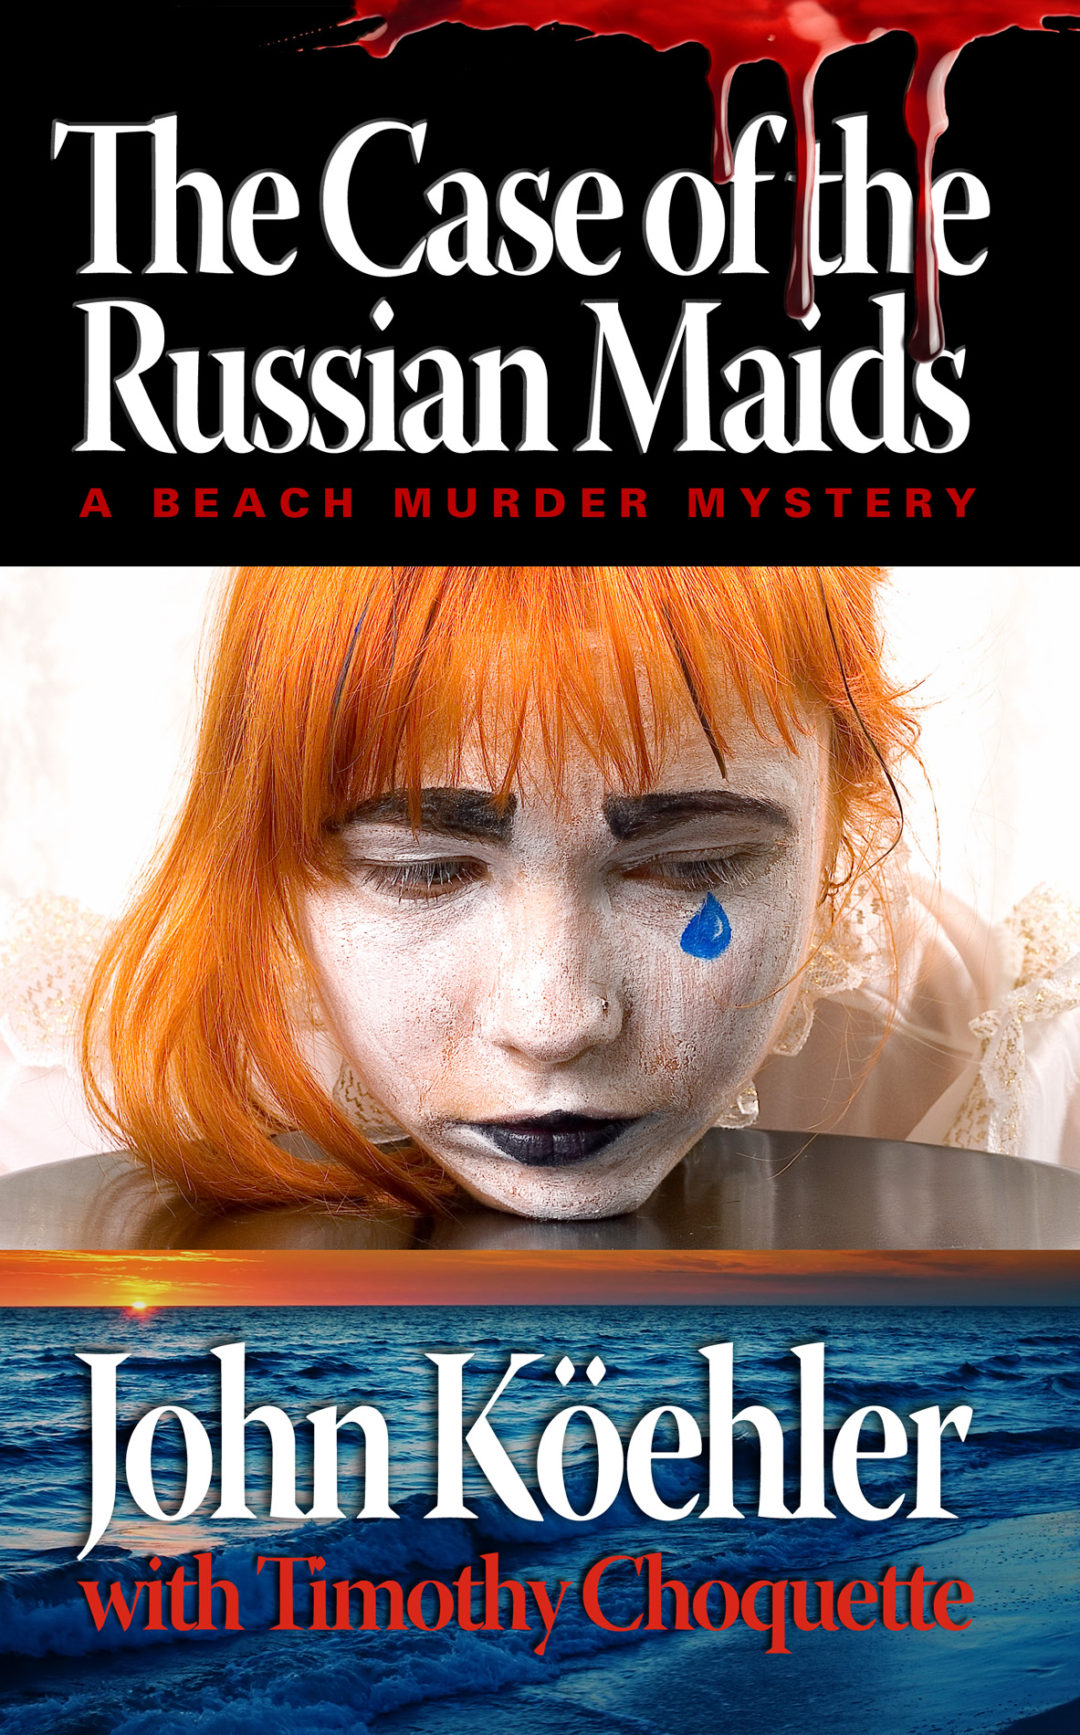 The Case of the Russian Maids